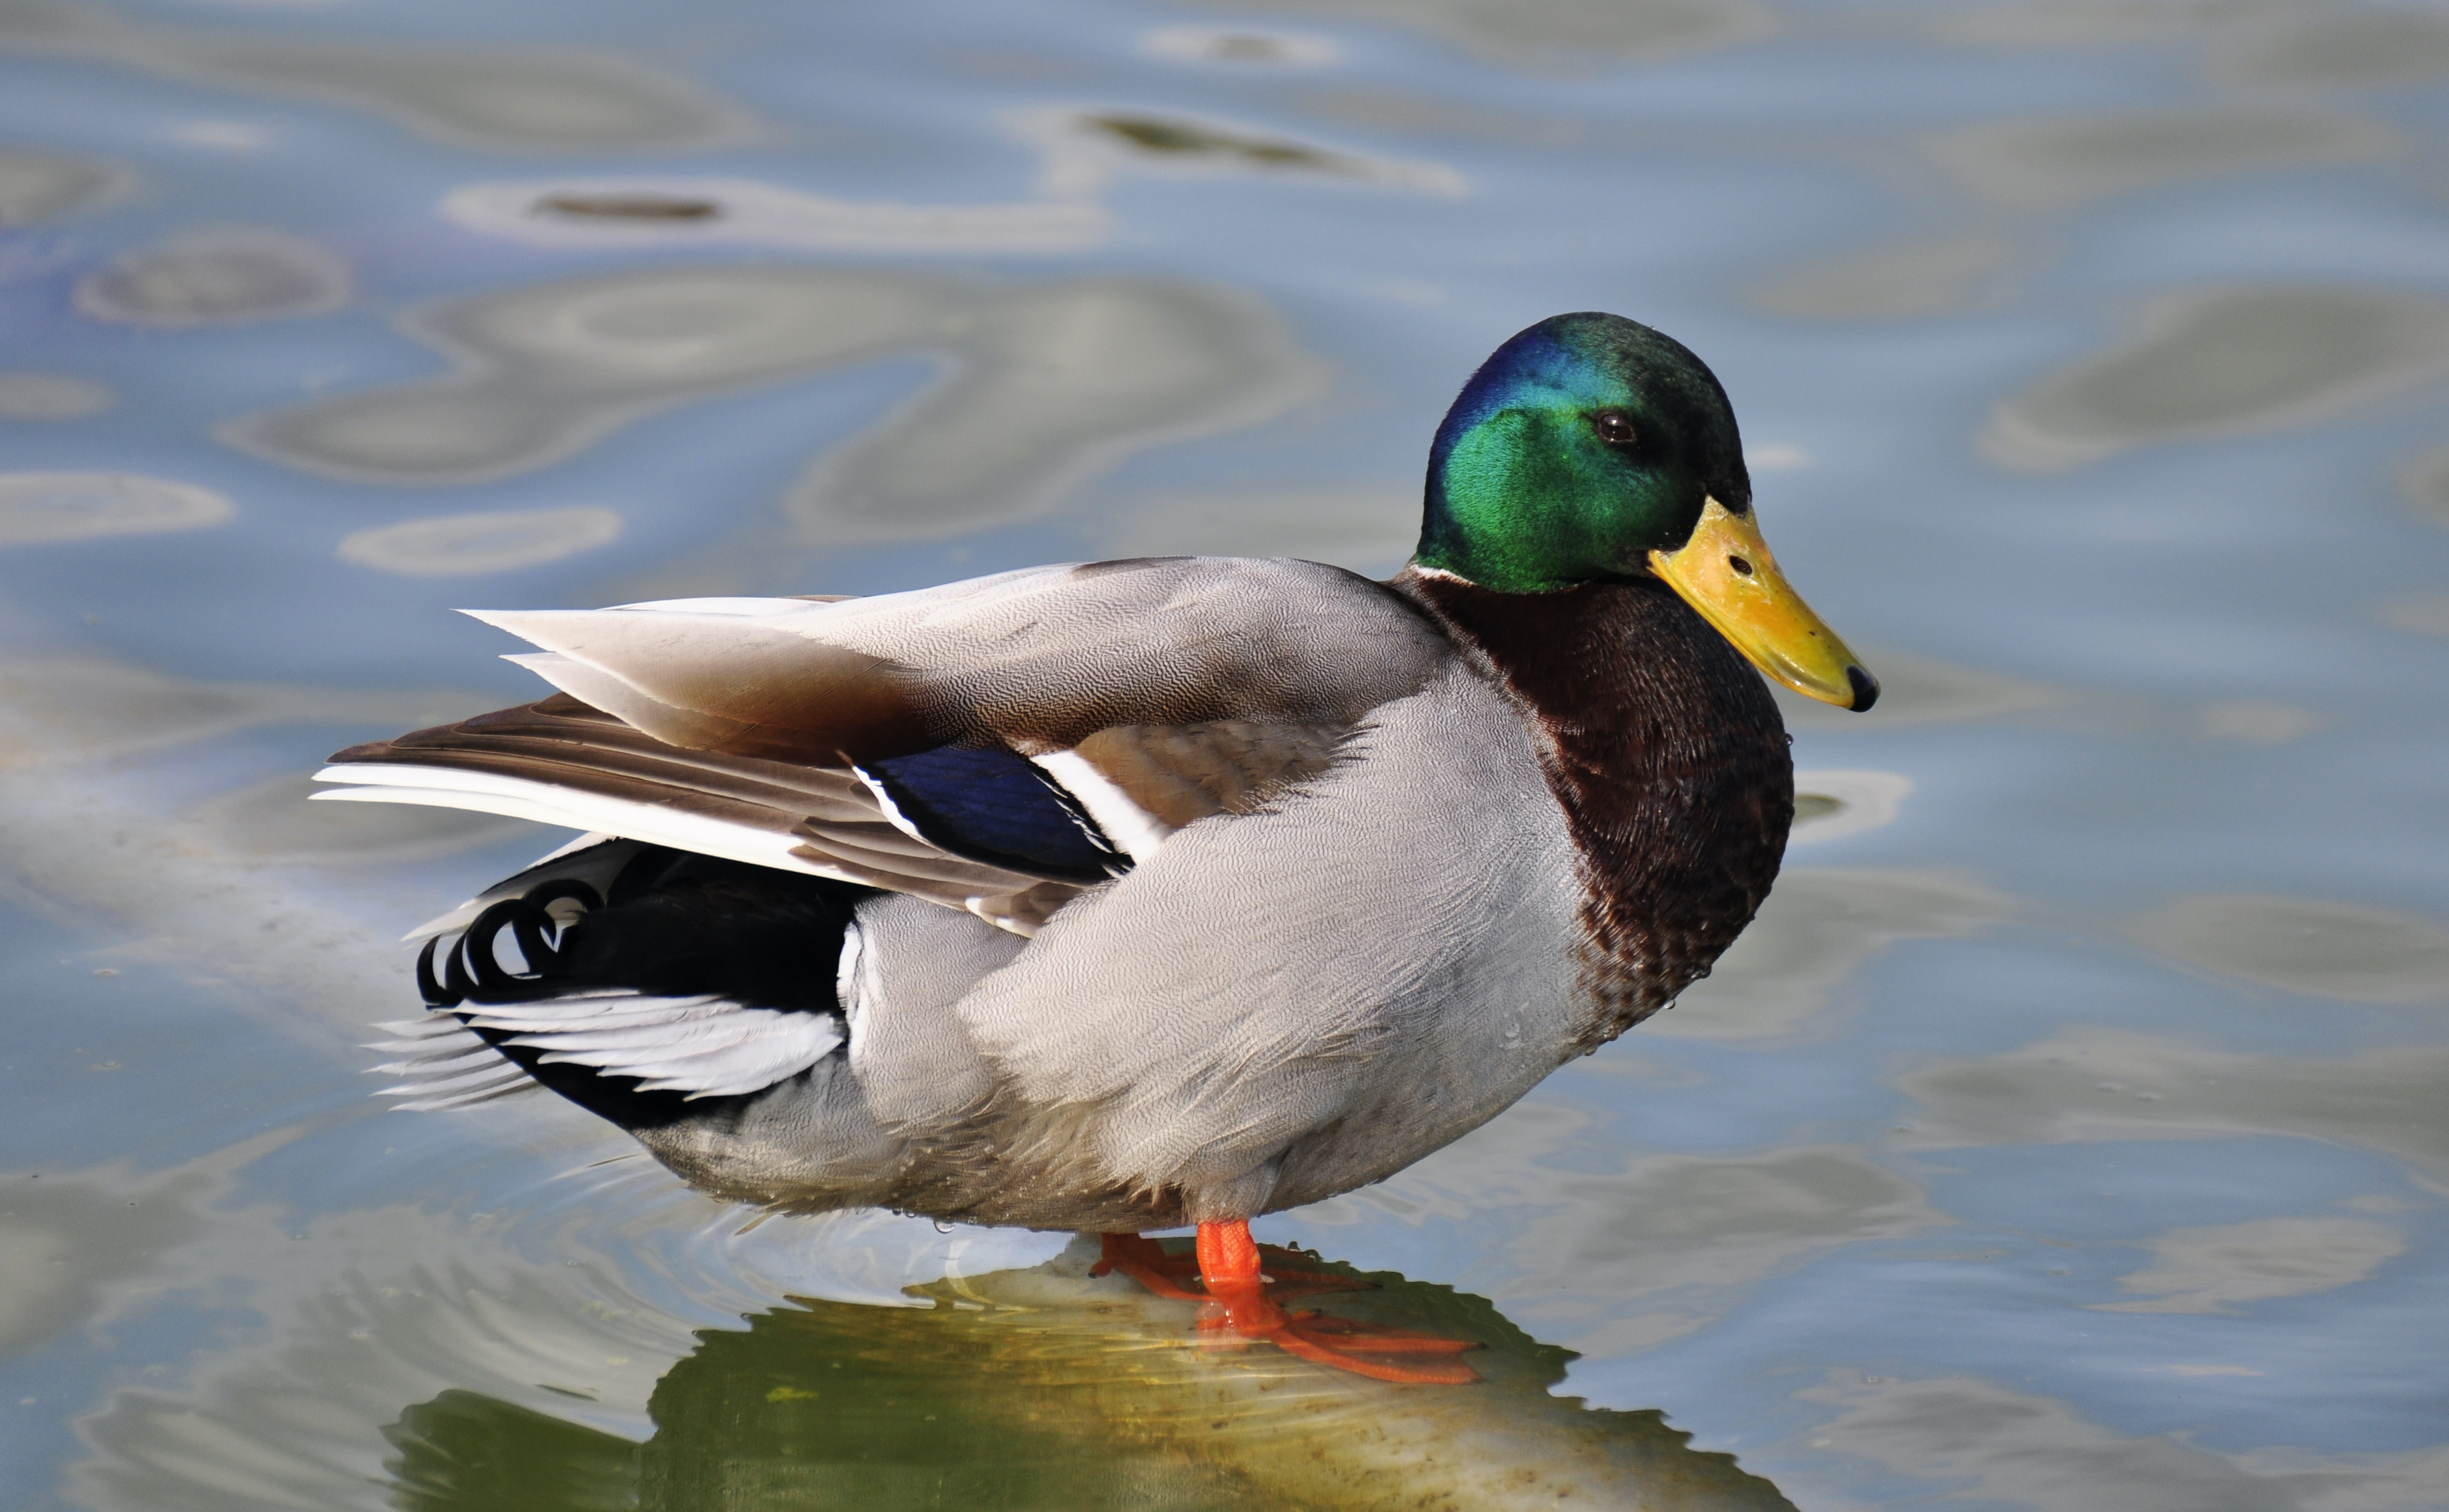 green, gray, and brown mallard duck in body of water